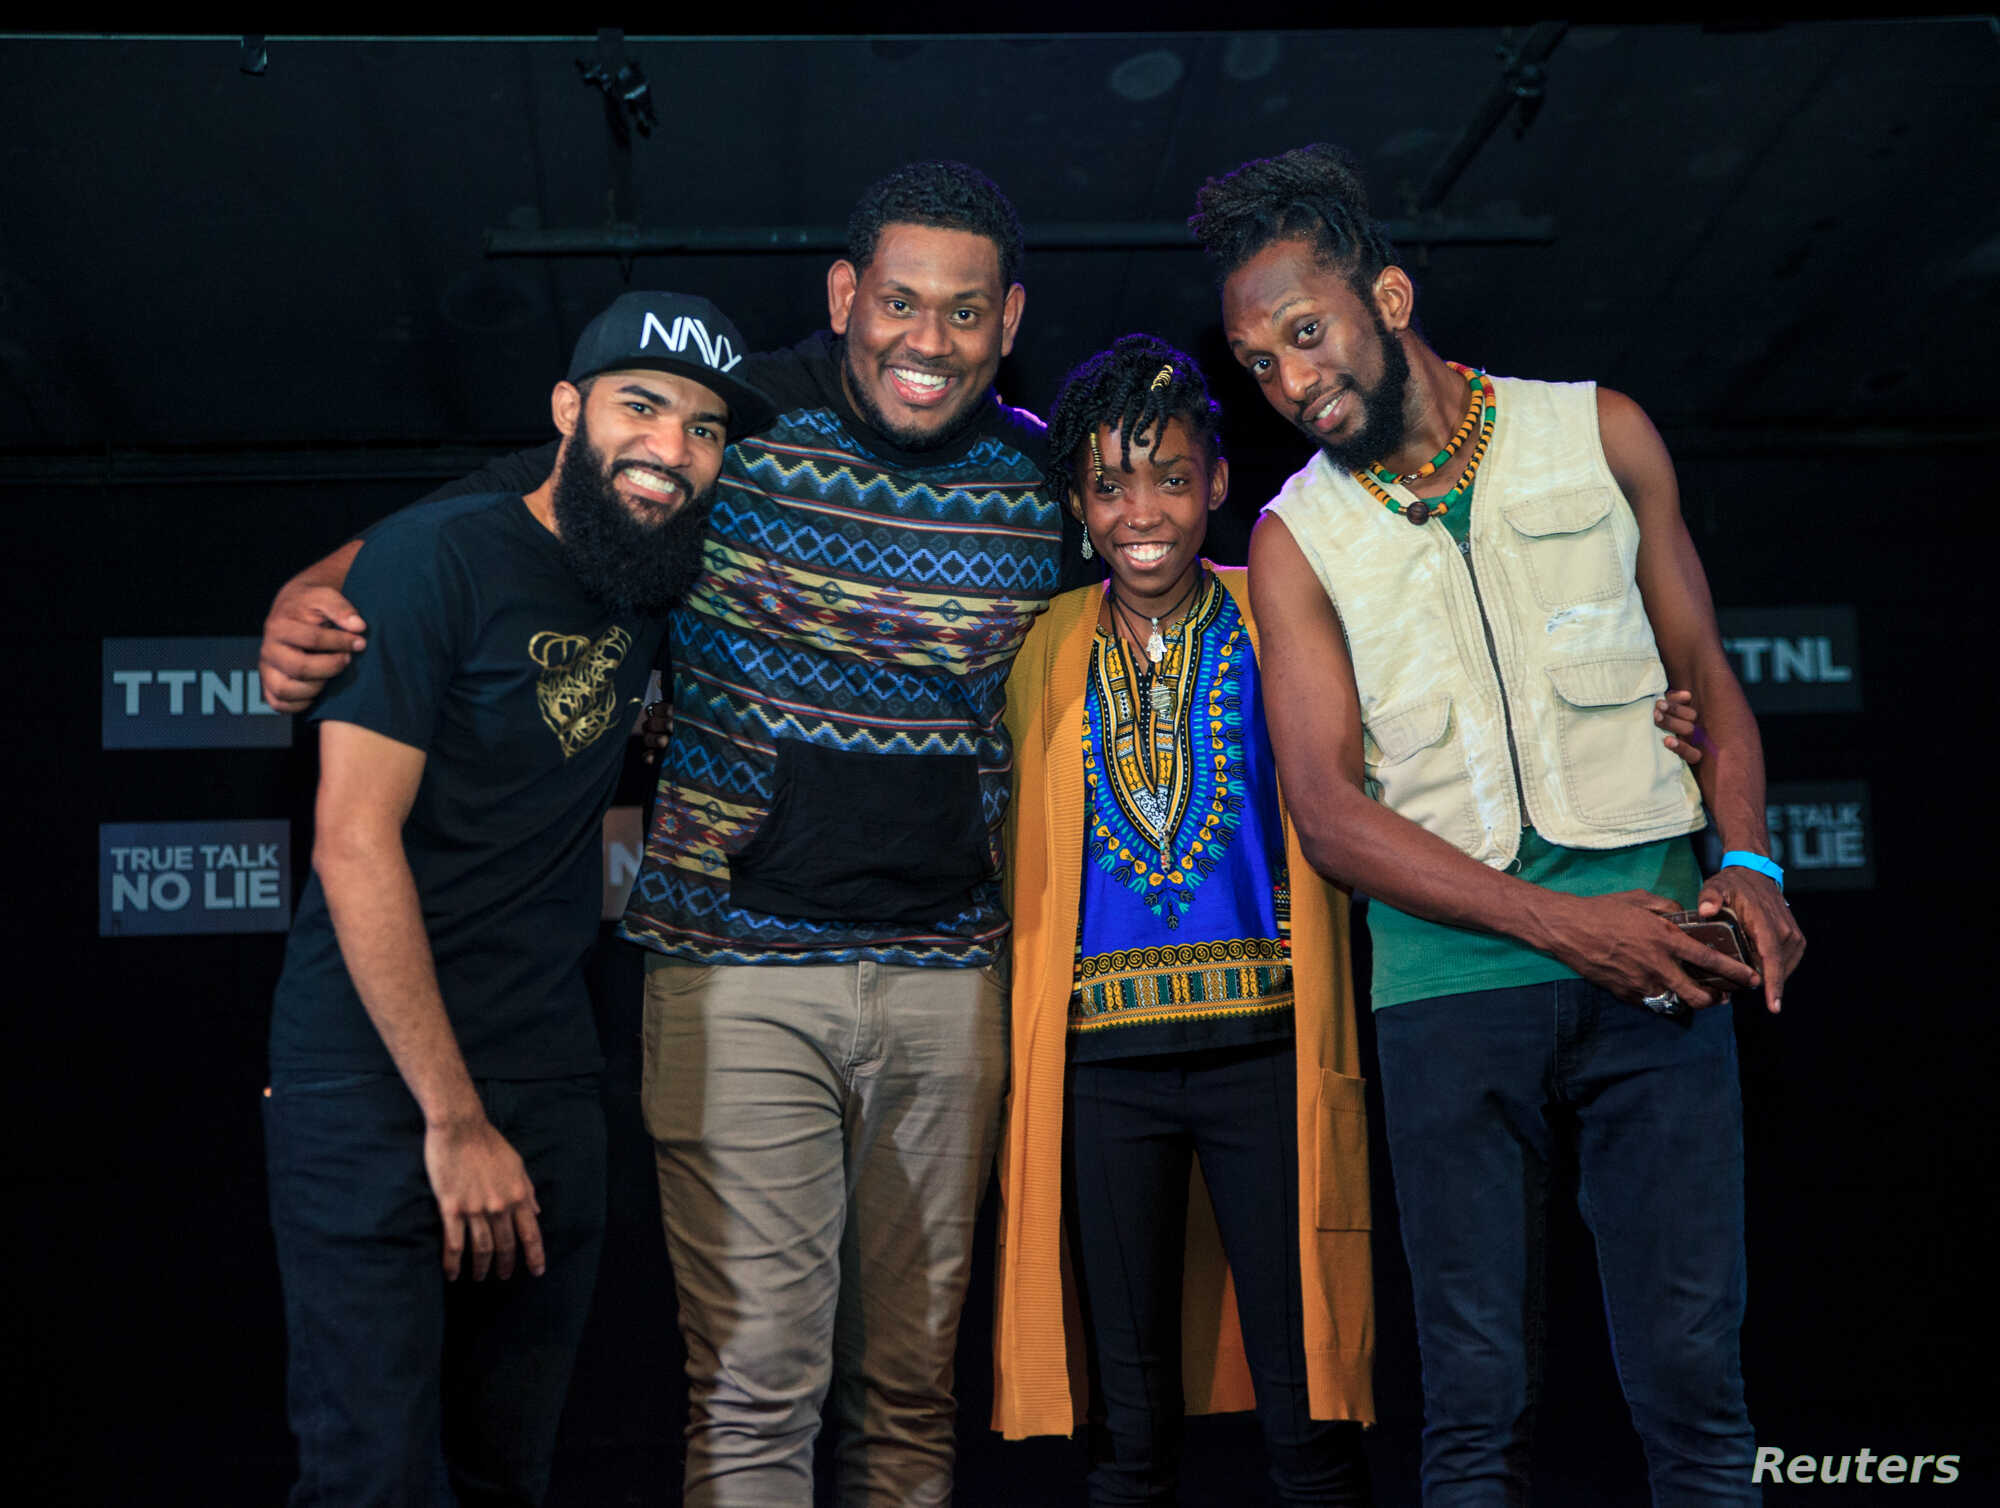 """Host Yvan Mendoza poses with performers Kyle Hernandez, Deneka Thomas, and Idrees Saleem at """"True Talk No Lie"""", a monthly spoken word event in Port of Spain, Trinidad and Tobago, May 23, 2018."""